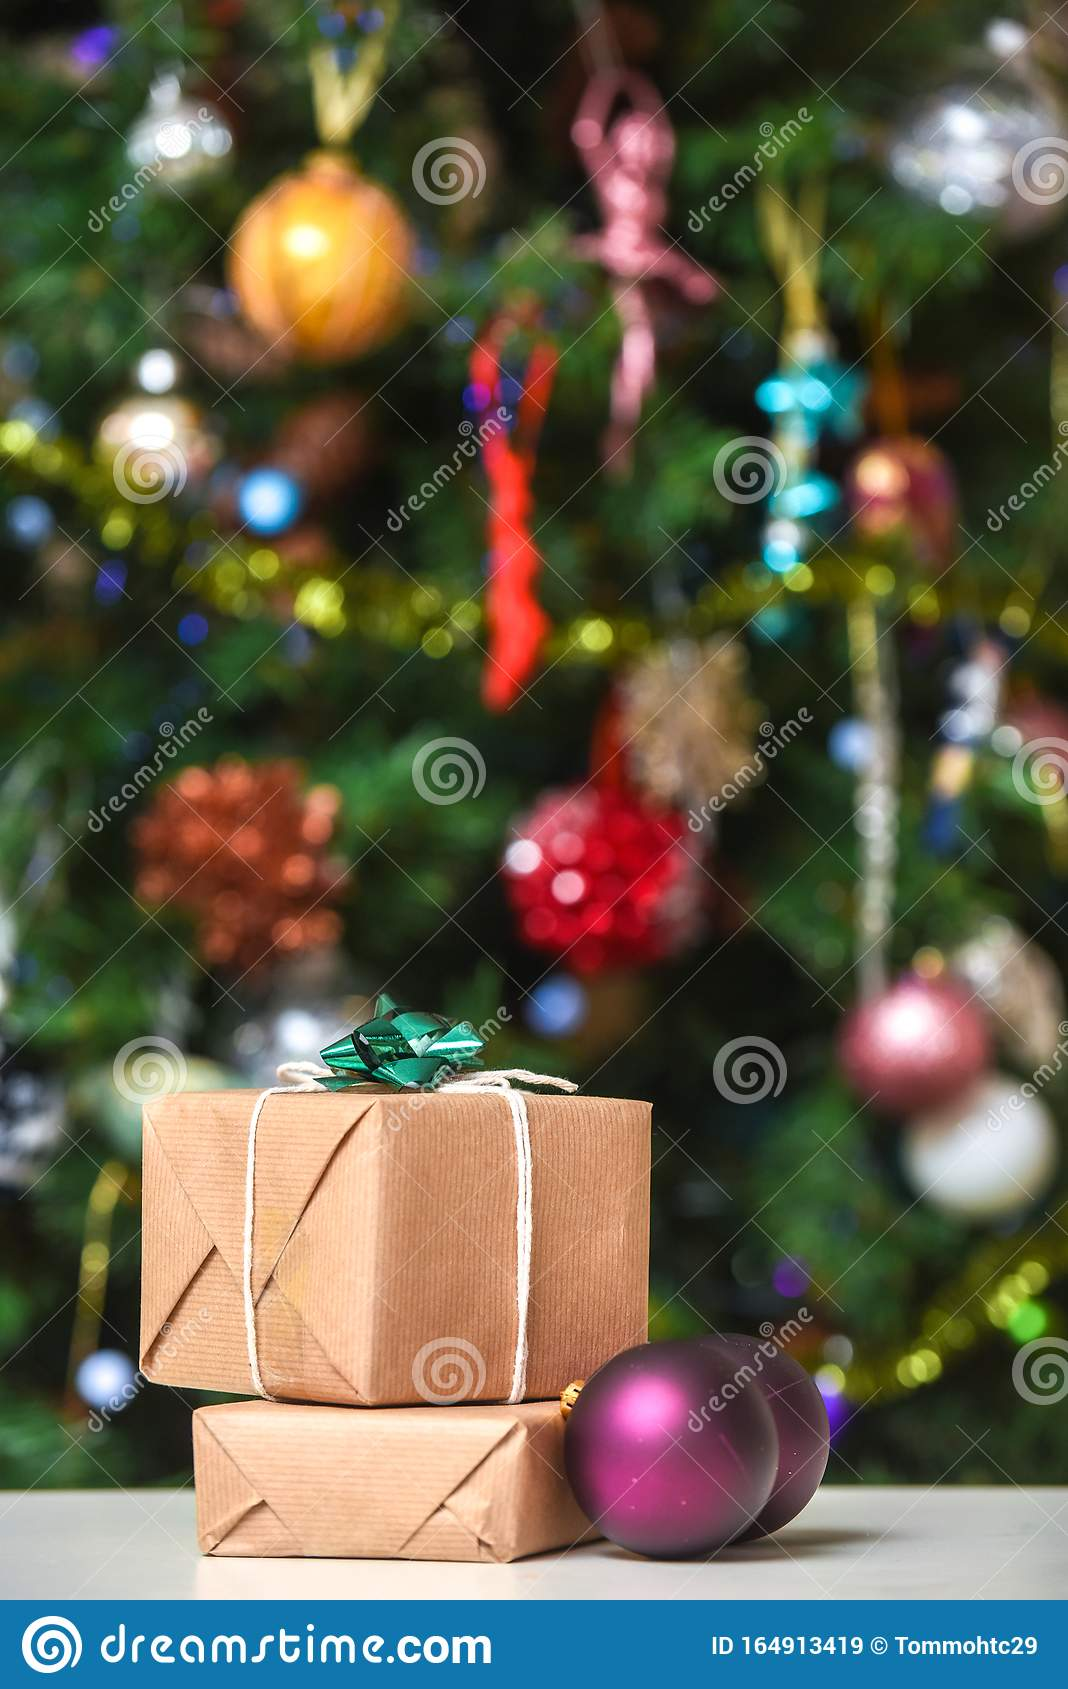 Gift Wrapped Christmas Presents Under The Decorated Christmas Tree In Cosy Family Home Interior Stock Image Image Of Decor Background 164913419